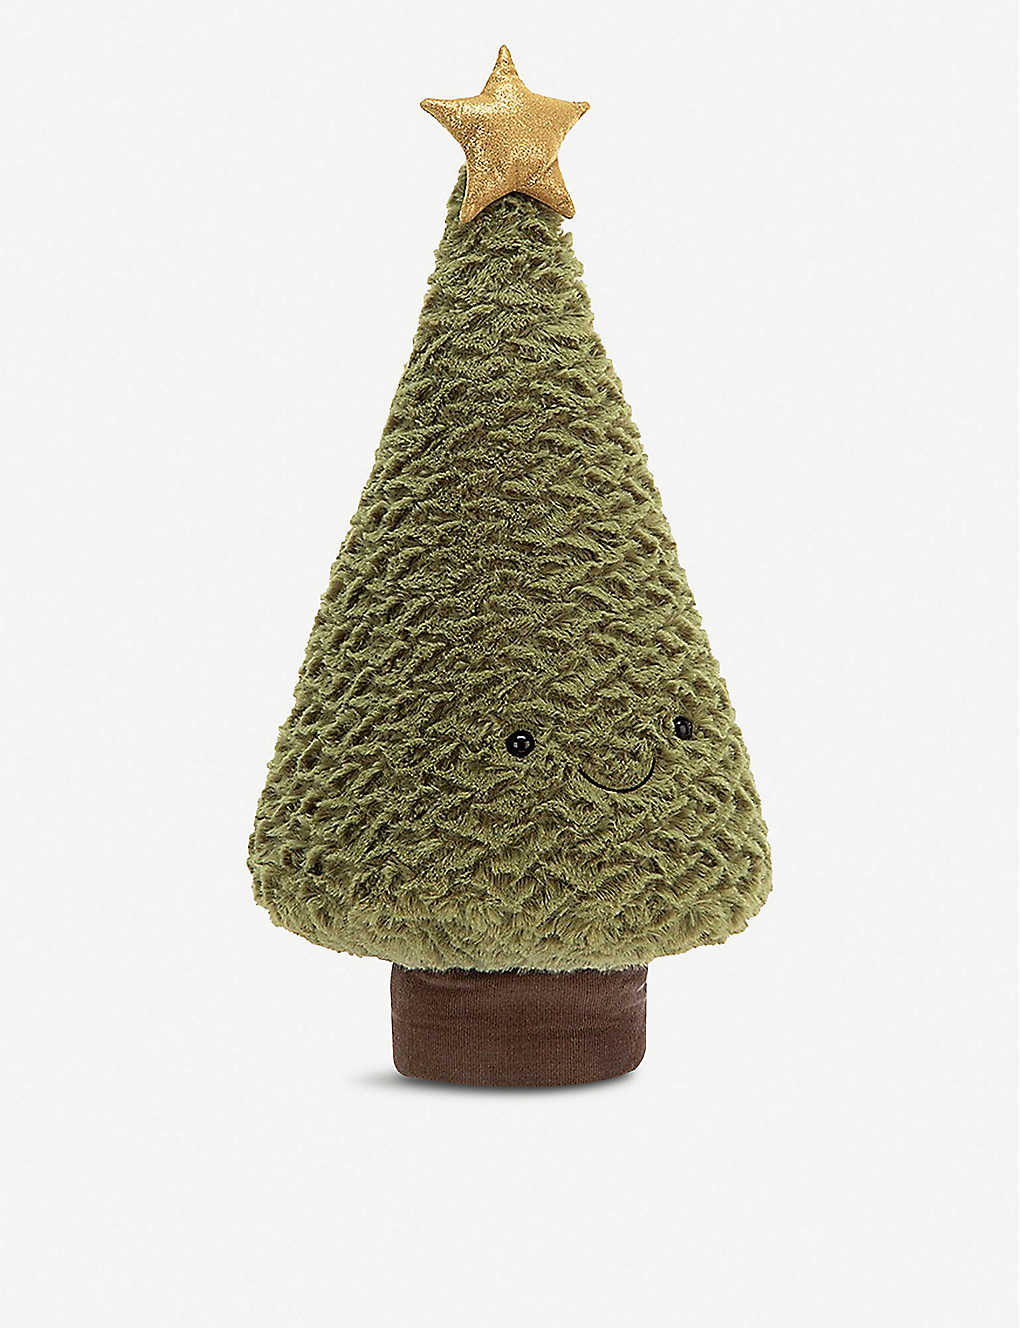 JELLYCAT: Amuseable Christmas Tree soft toy 92cm